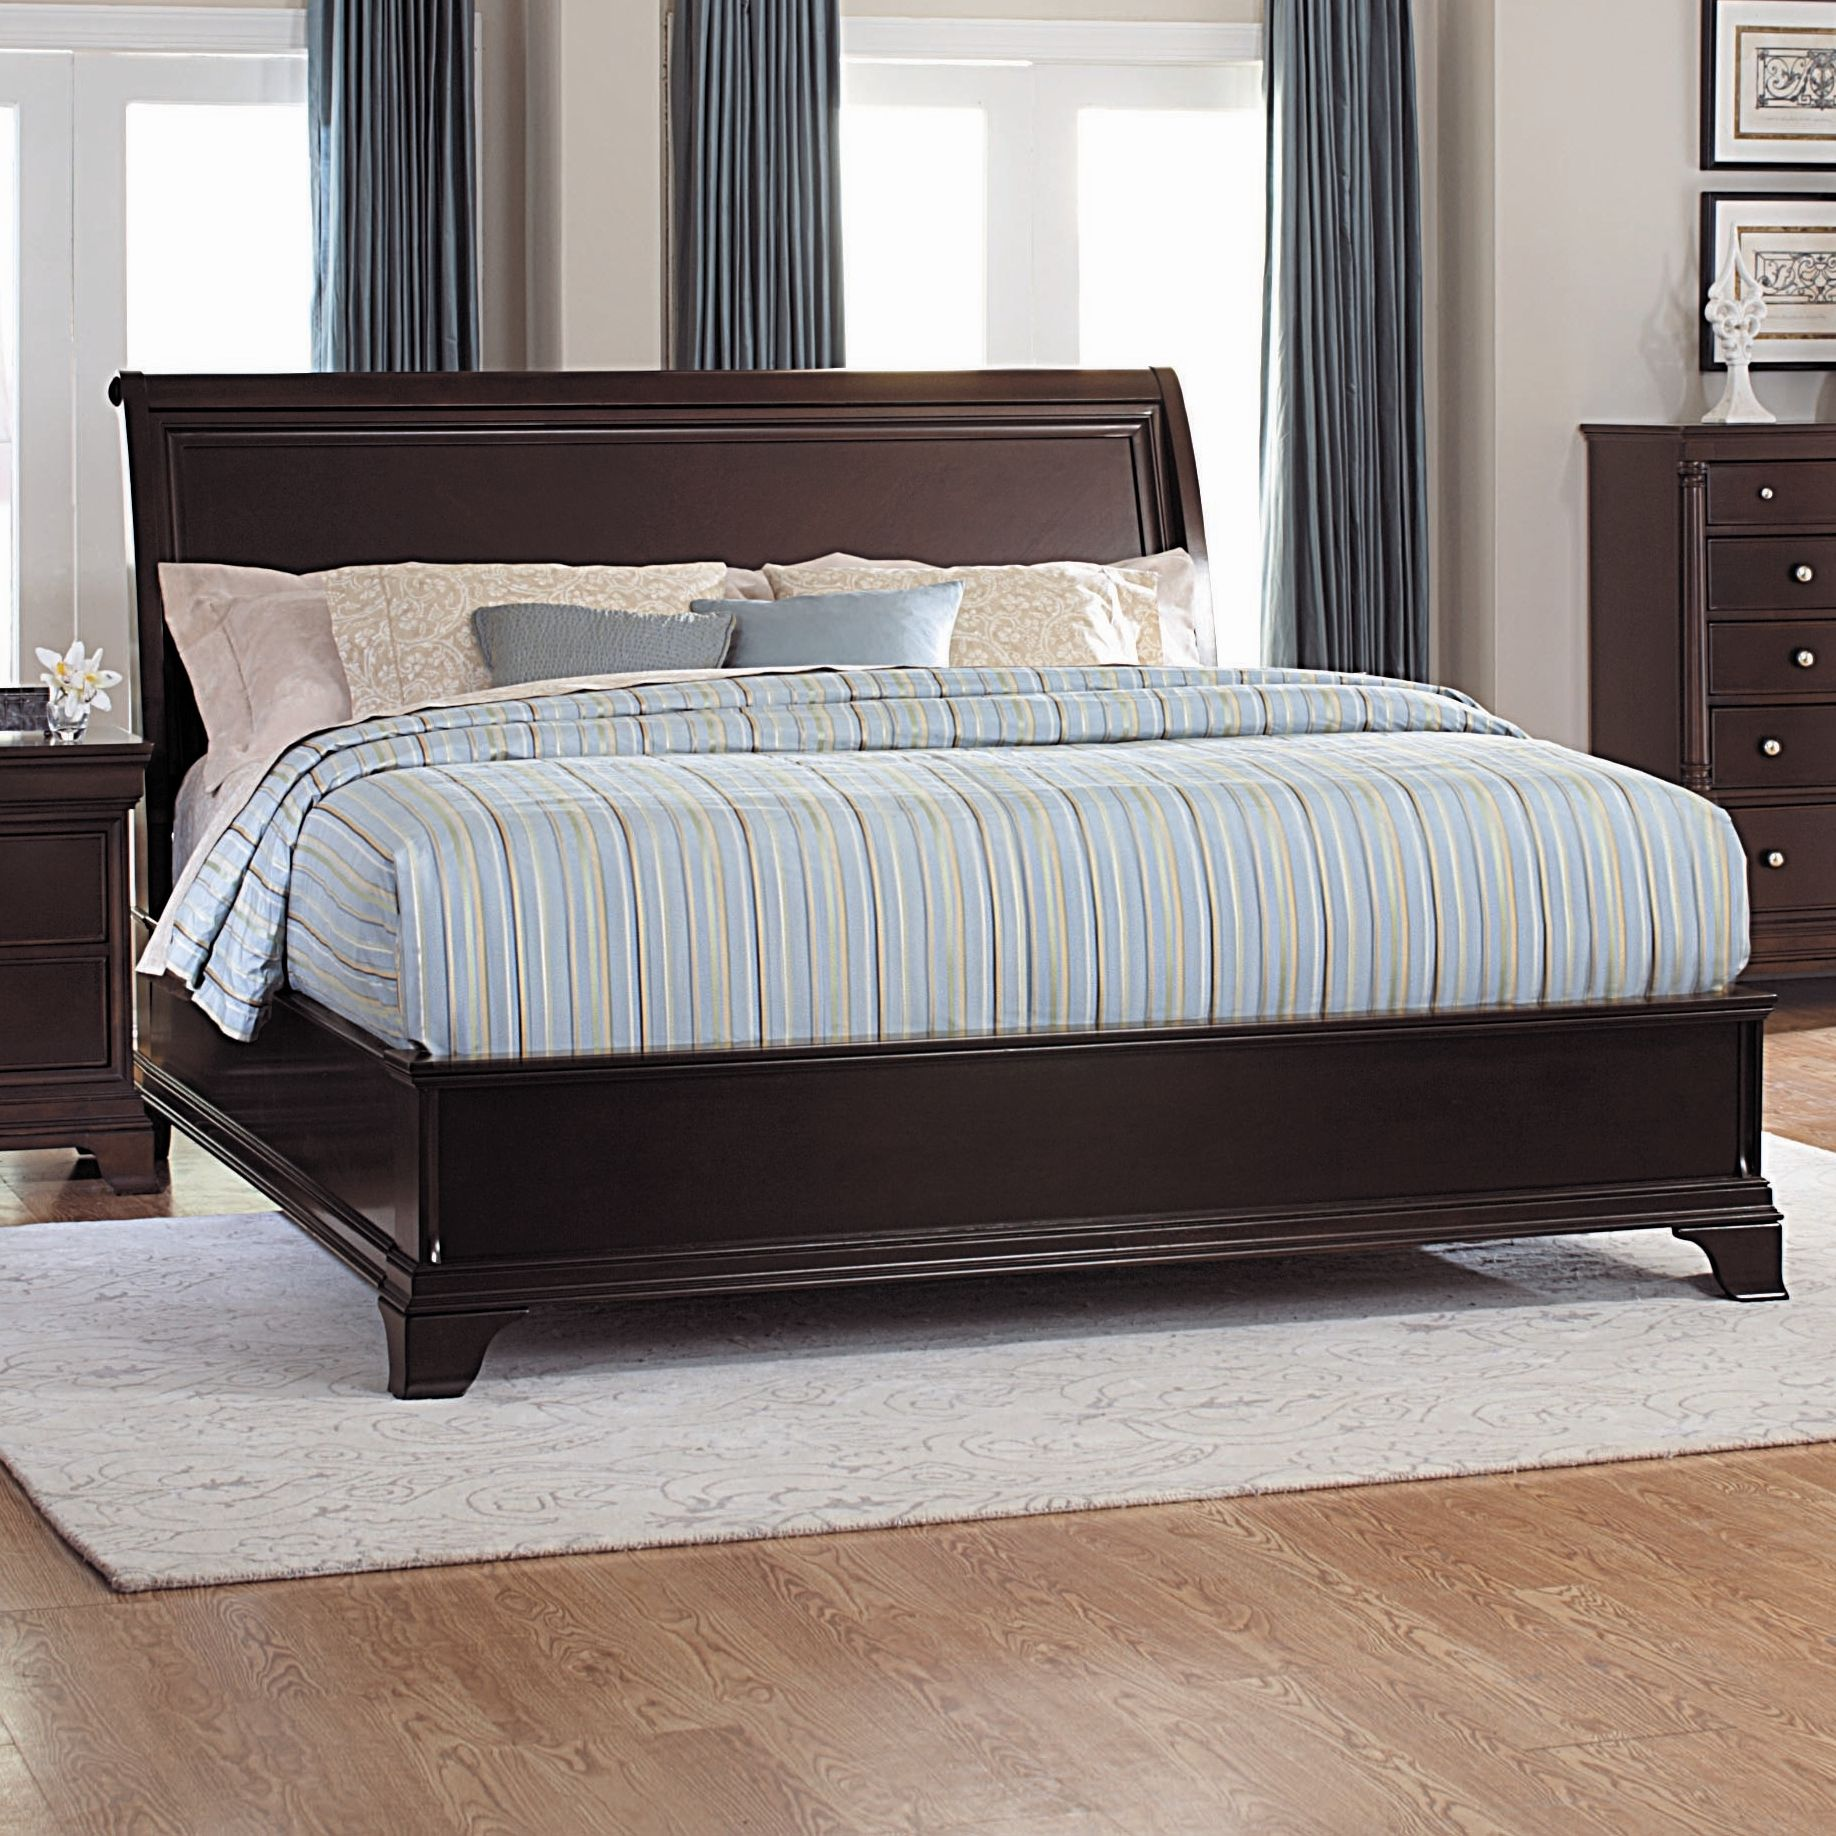 Woodbridge Home Designs Inglewood Panel Low Profile Bed Mirrored